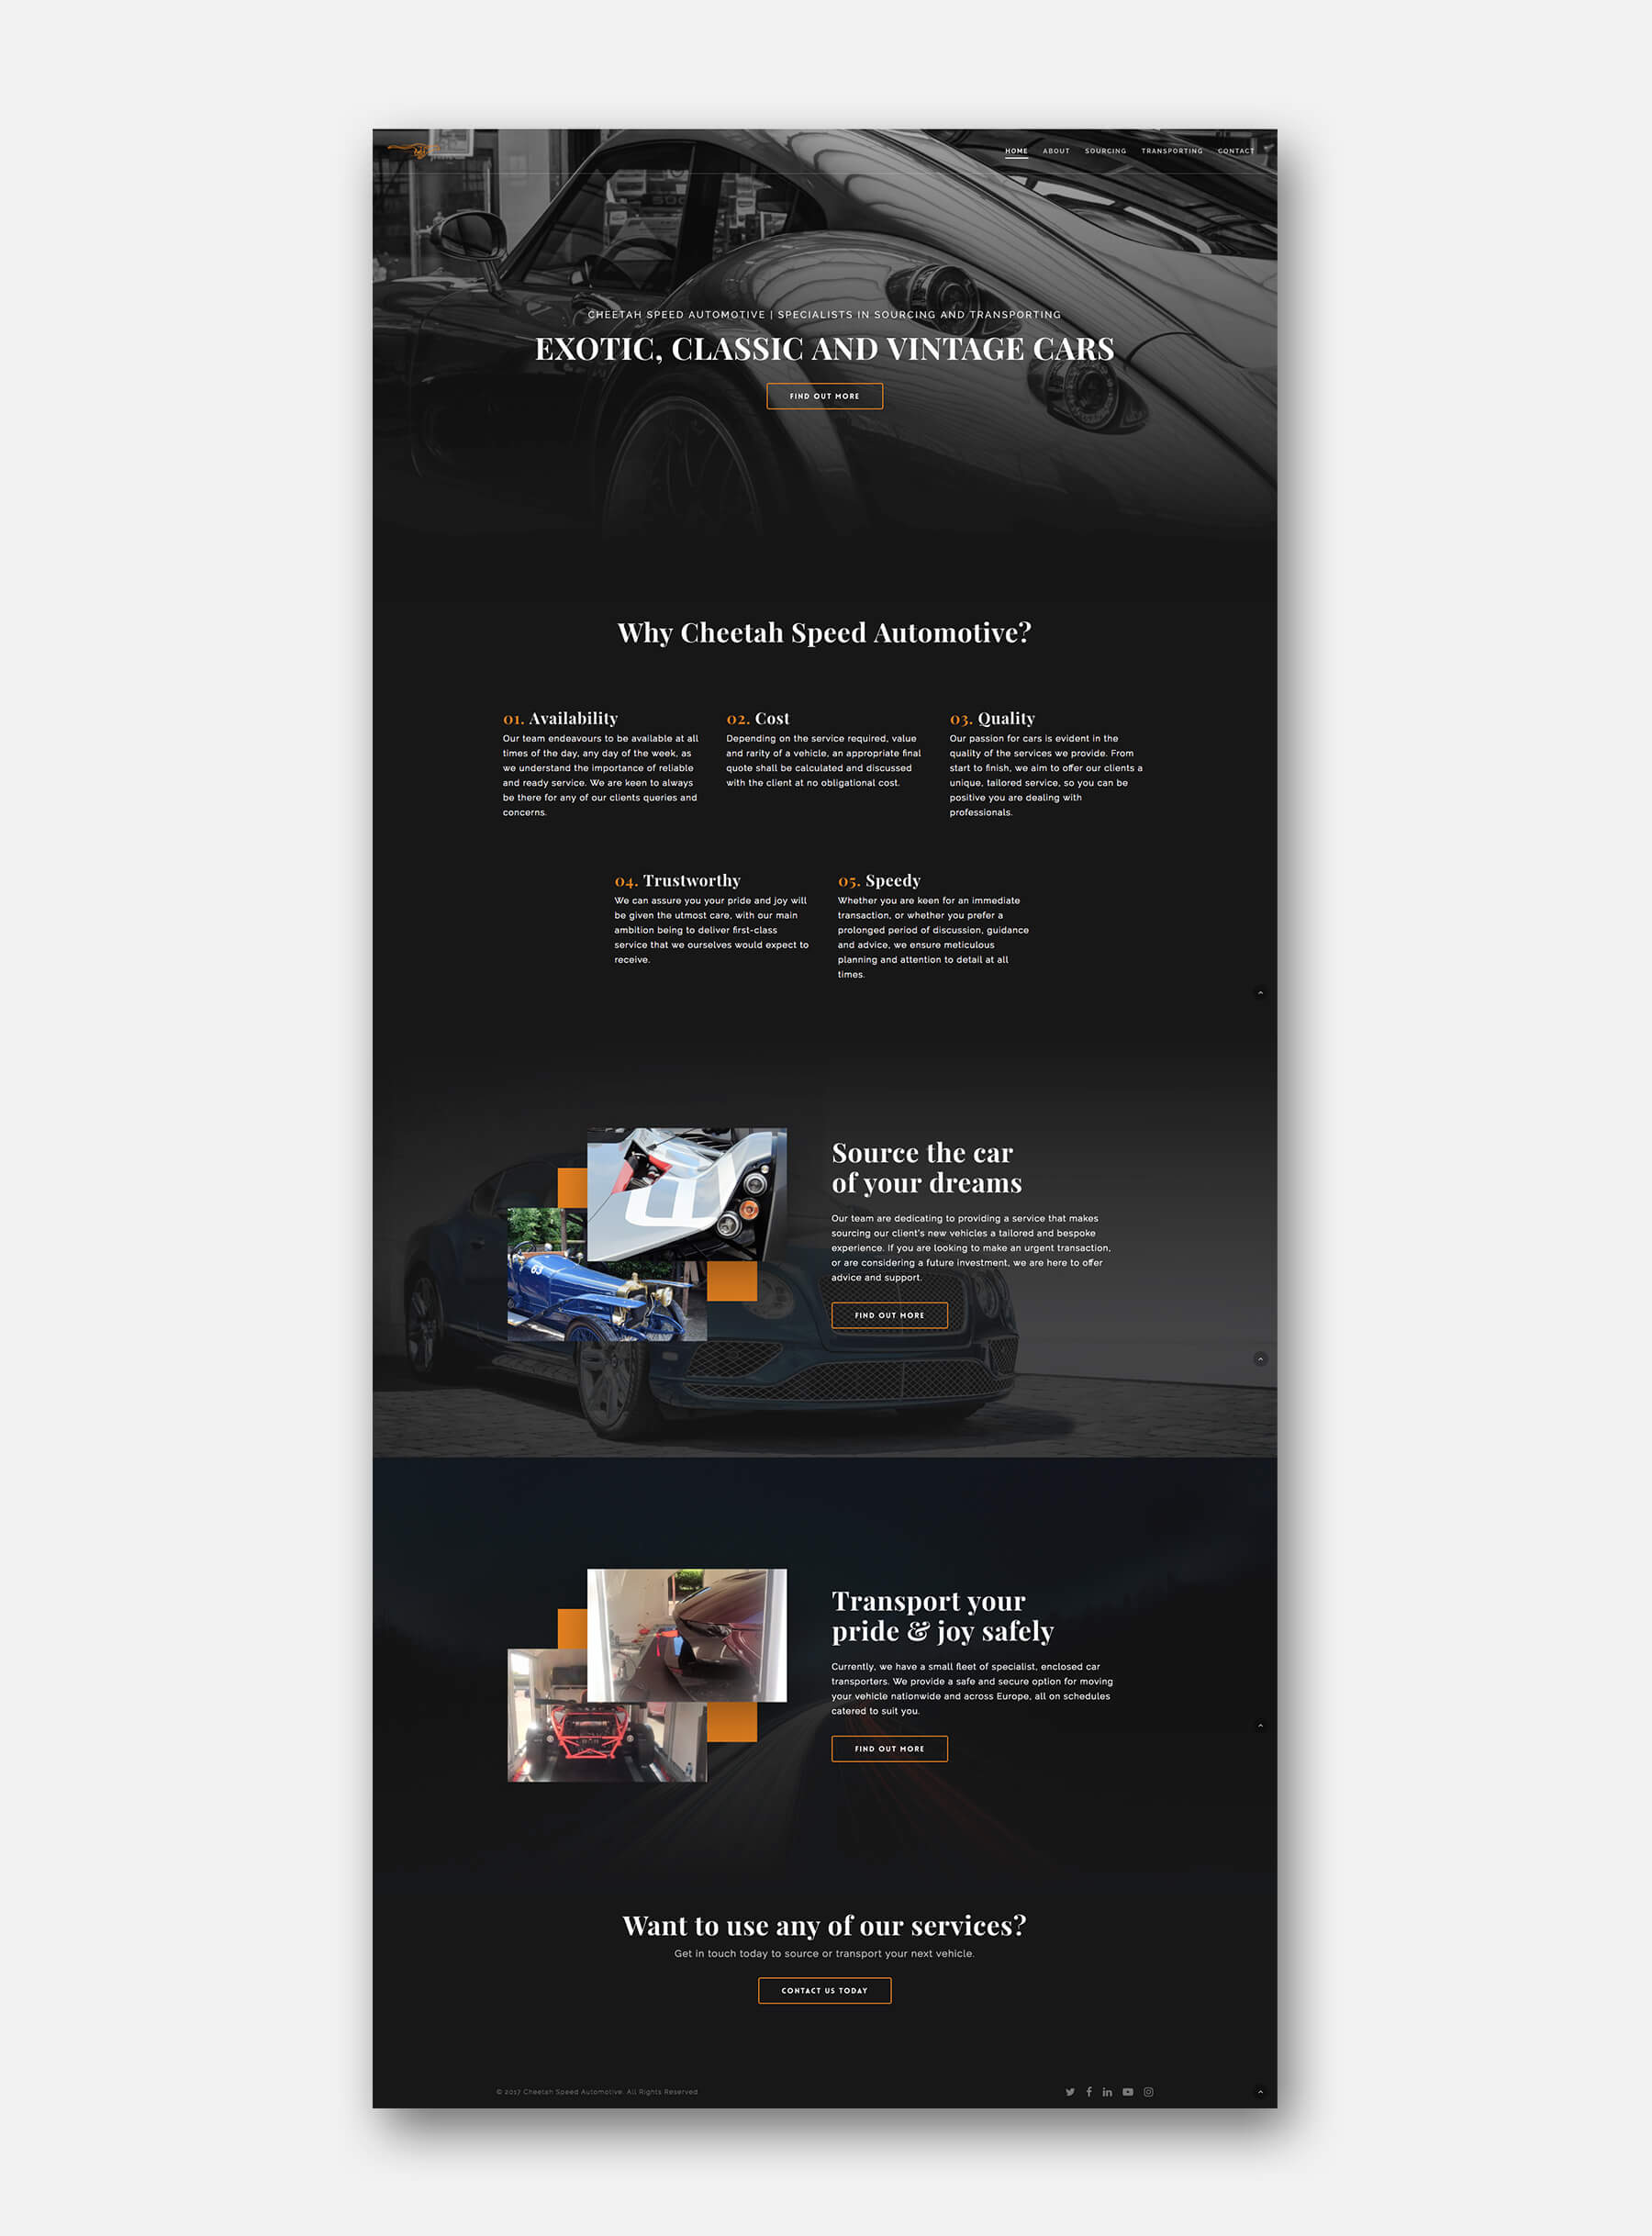 Cheetah Speed Automotive Website Home Page